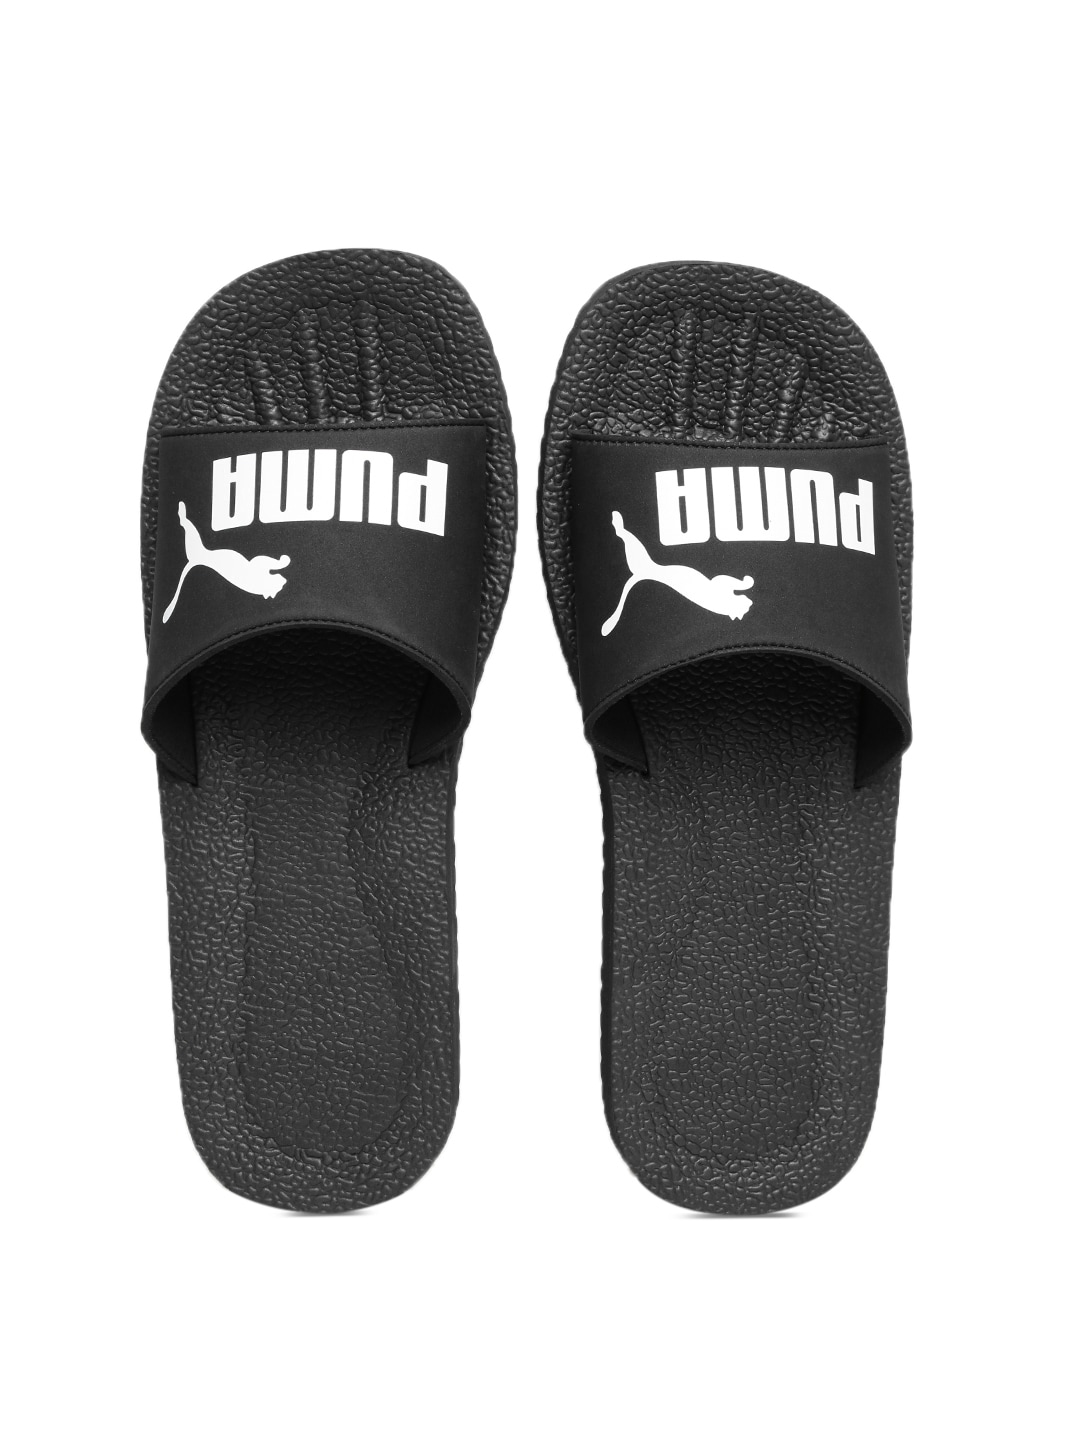 Puma Flip - Buy Puma Flip online in India 44ef1a198